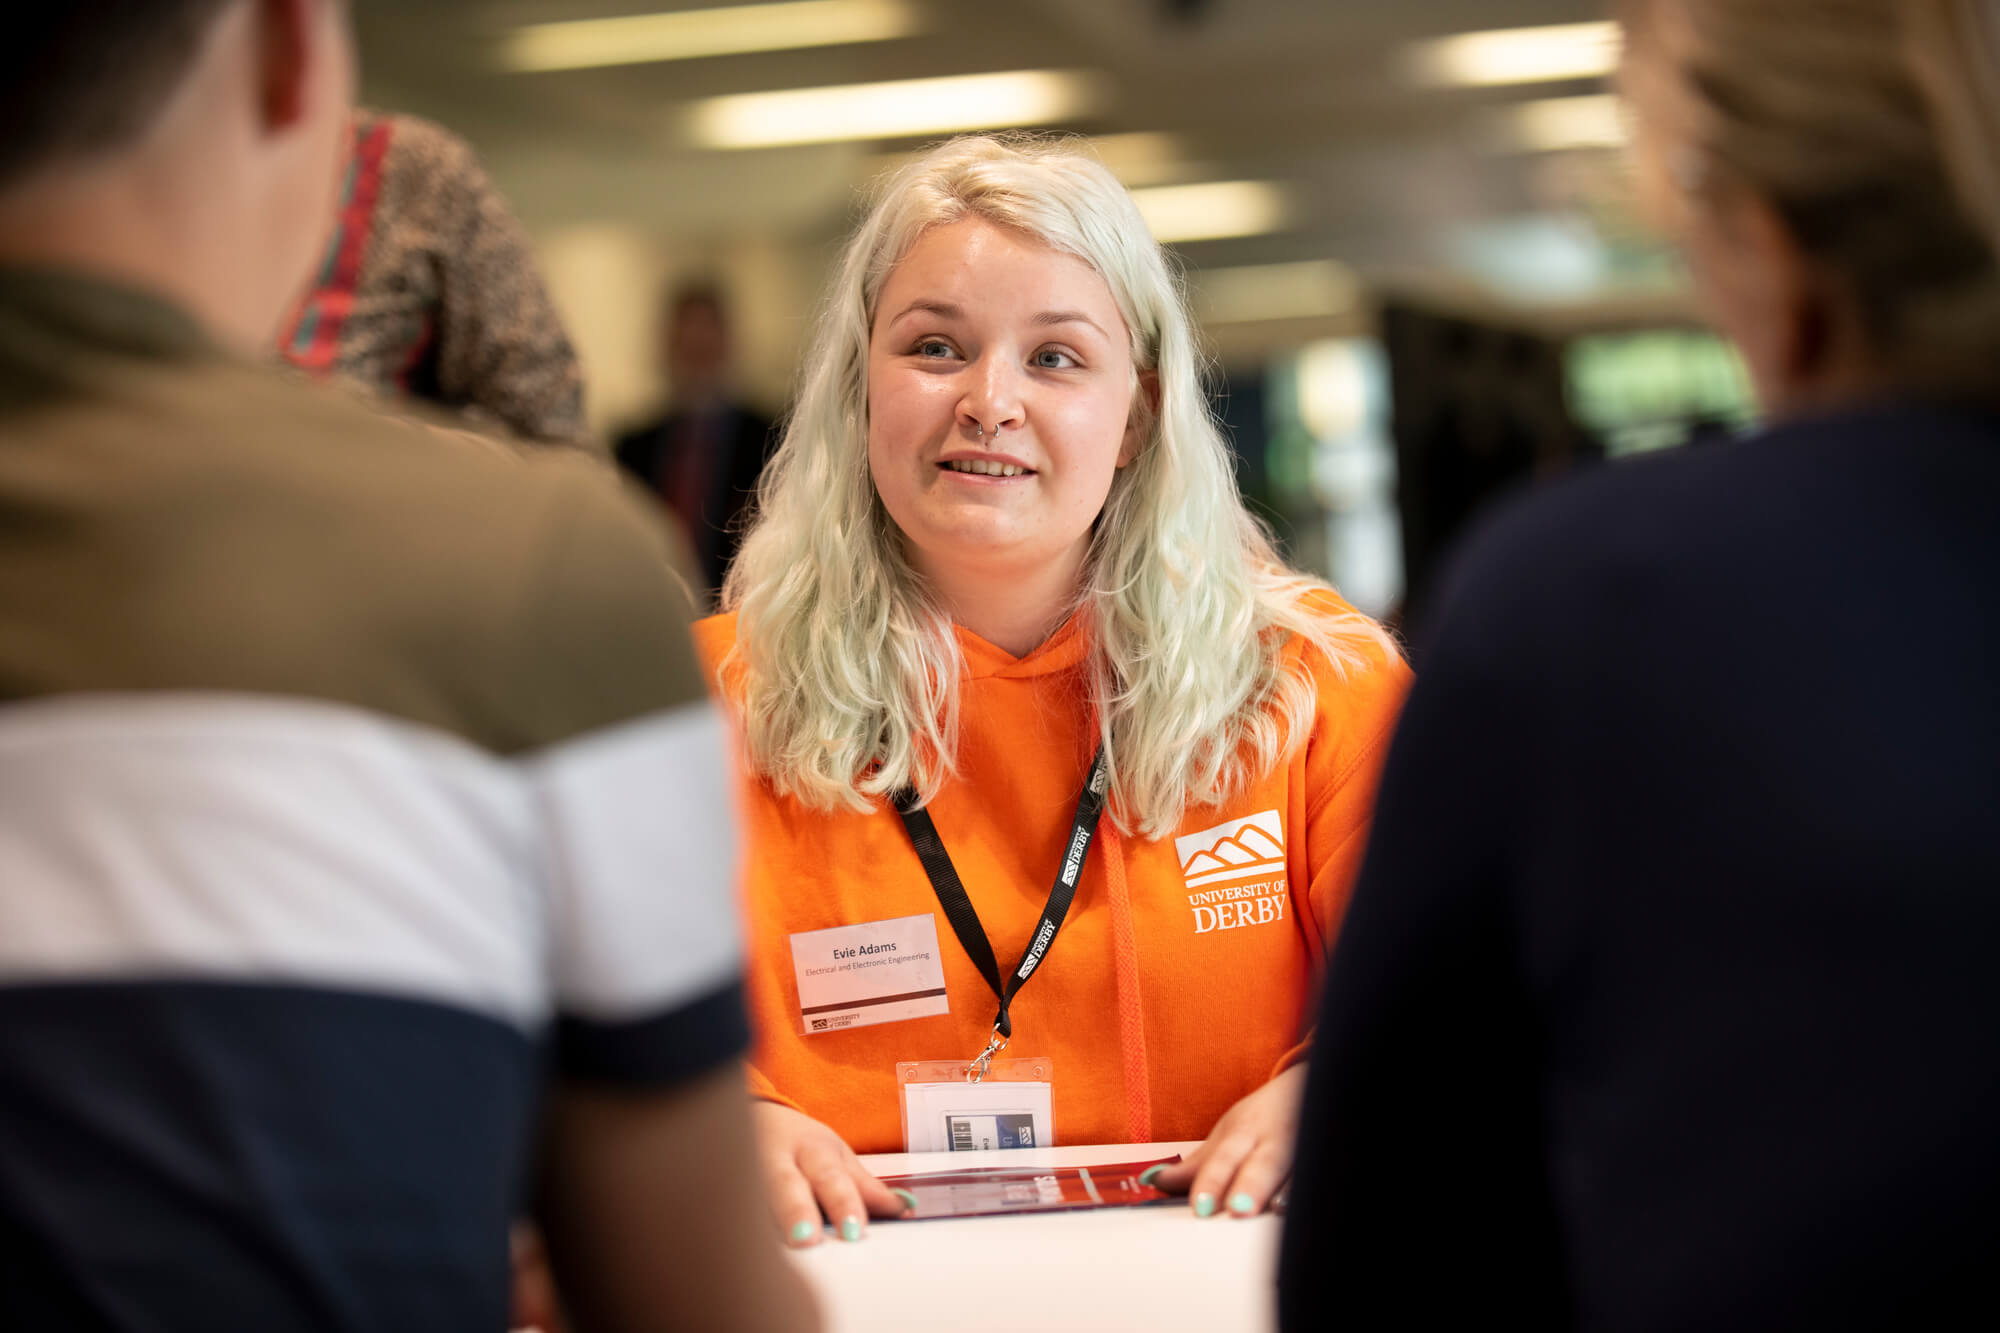 Student Ambassador speaking with prospective students at an Open Day